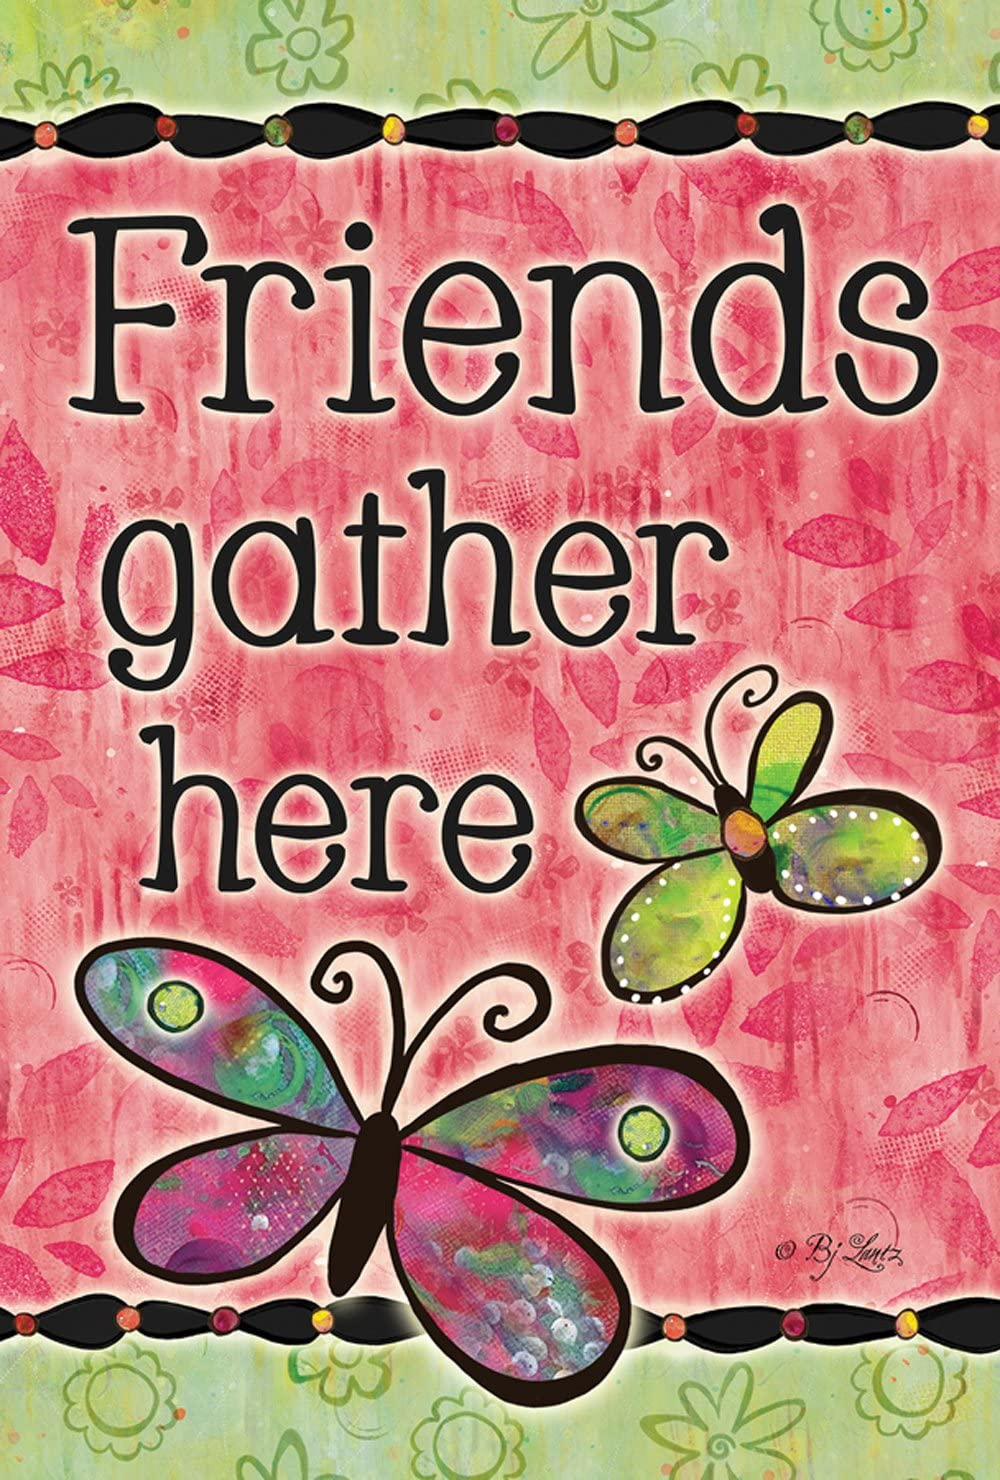 Toland Home Garden Friends Gather Here 12.5 x 18 Inch Decorative Colorful Spring Butterfly Double Sided Garden Flag